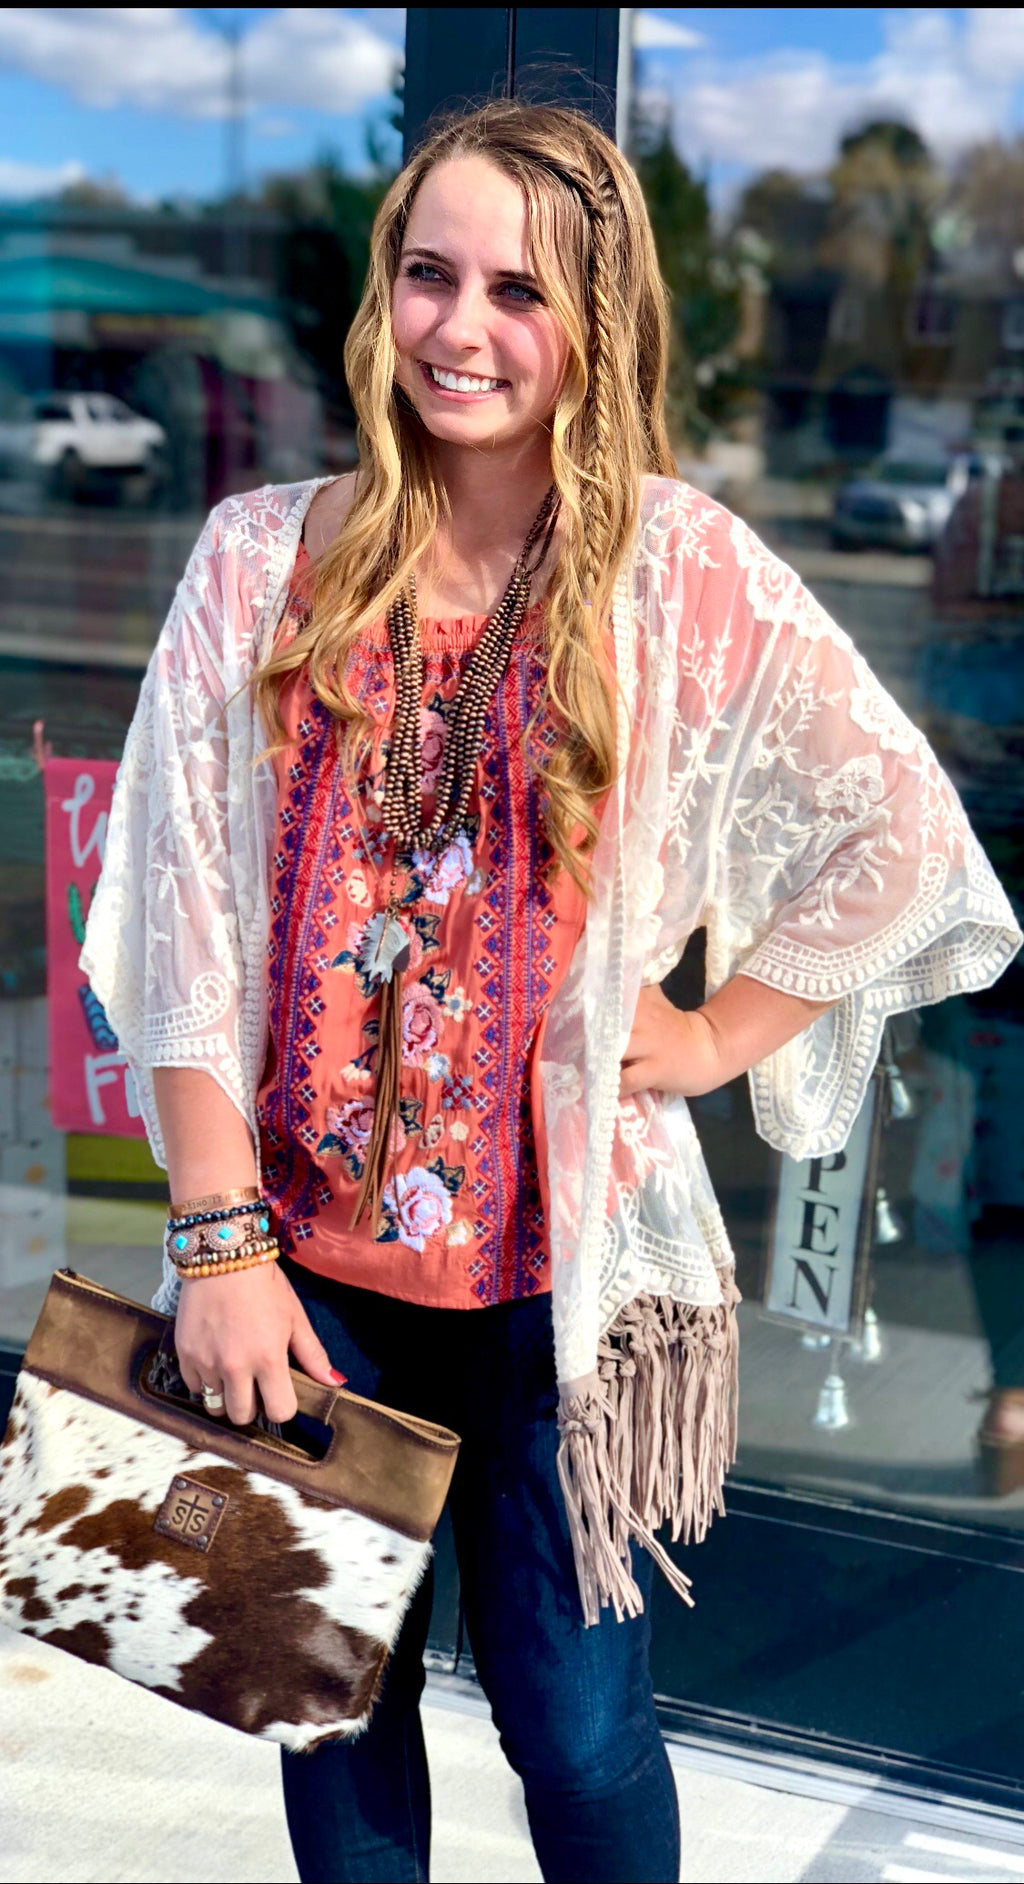 The Tuscaloosa Lace and Fringe Kimono